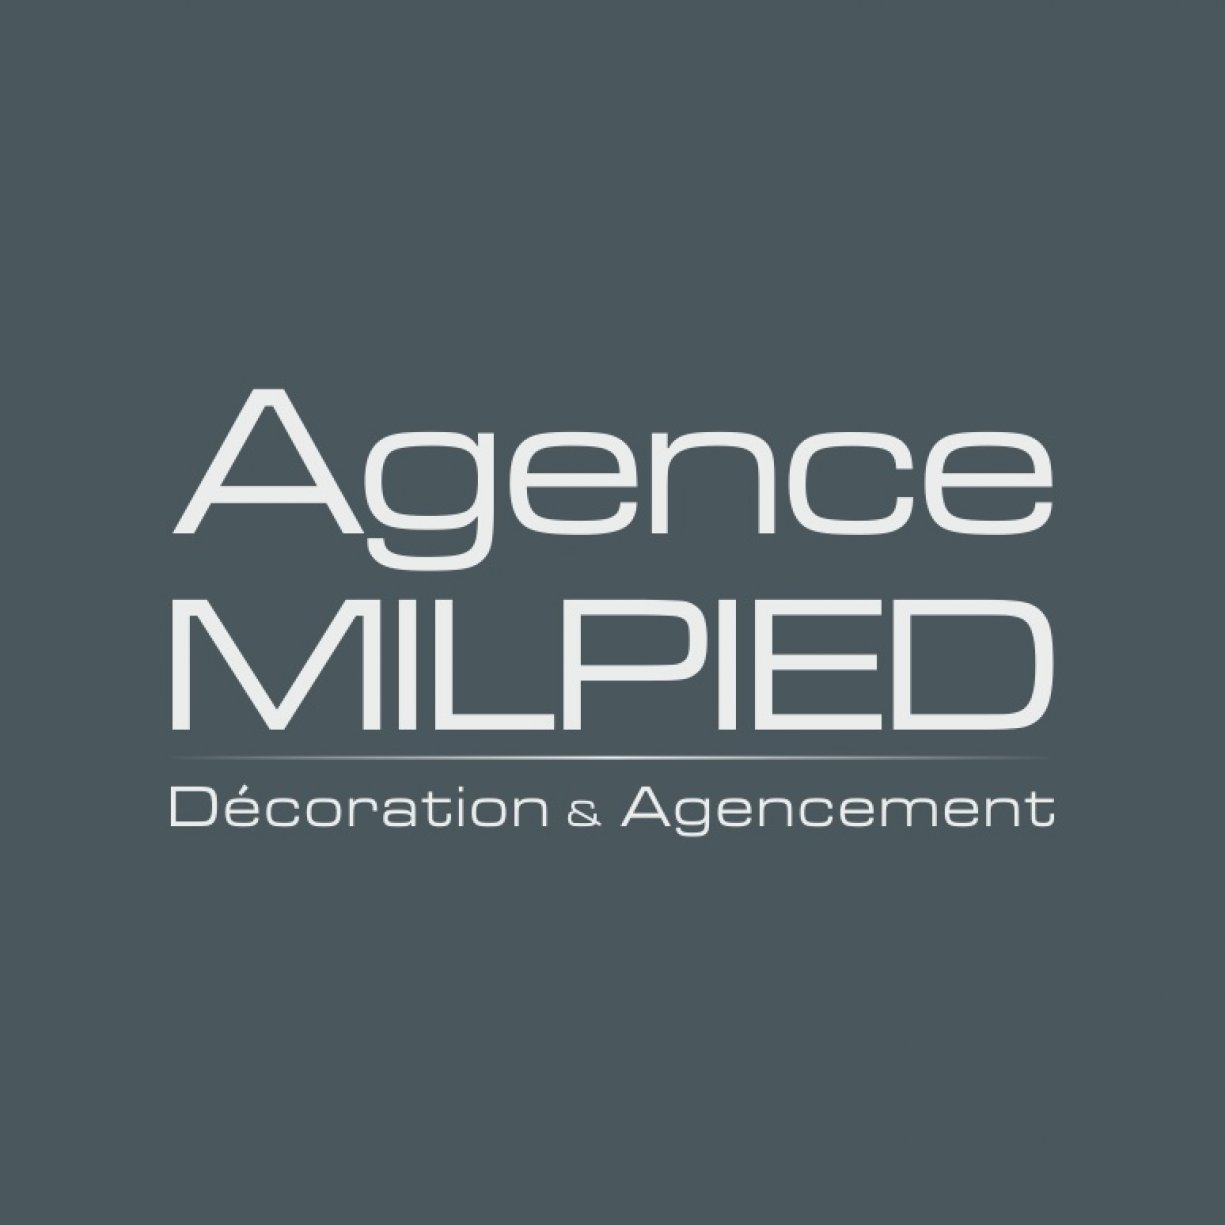 Agence Milpied Agencement Décoration